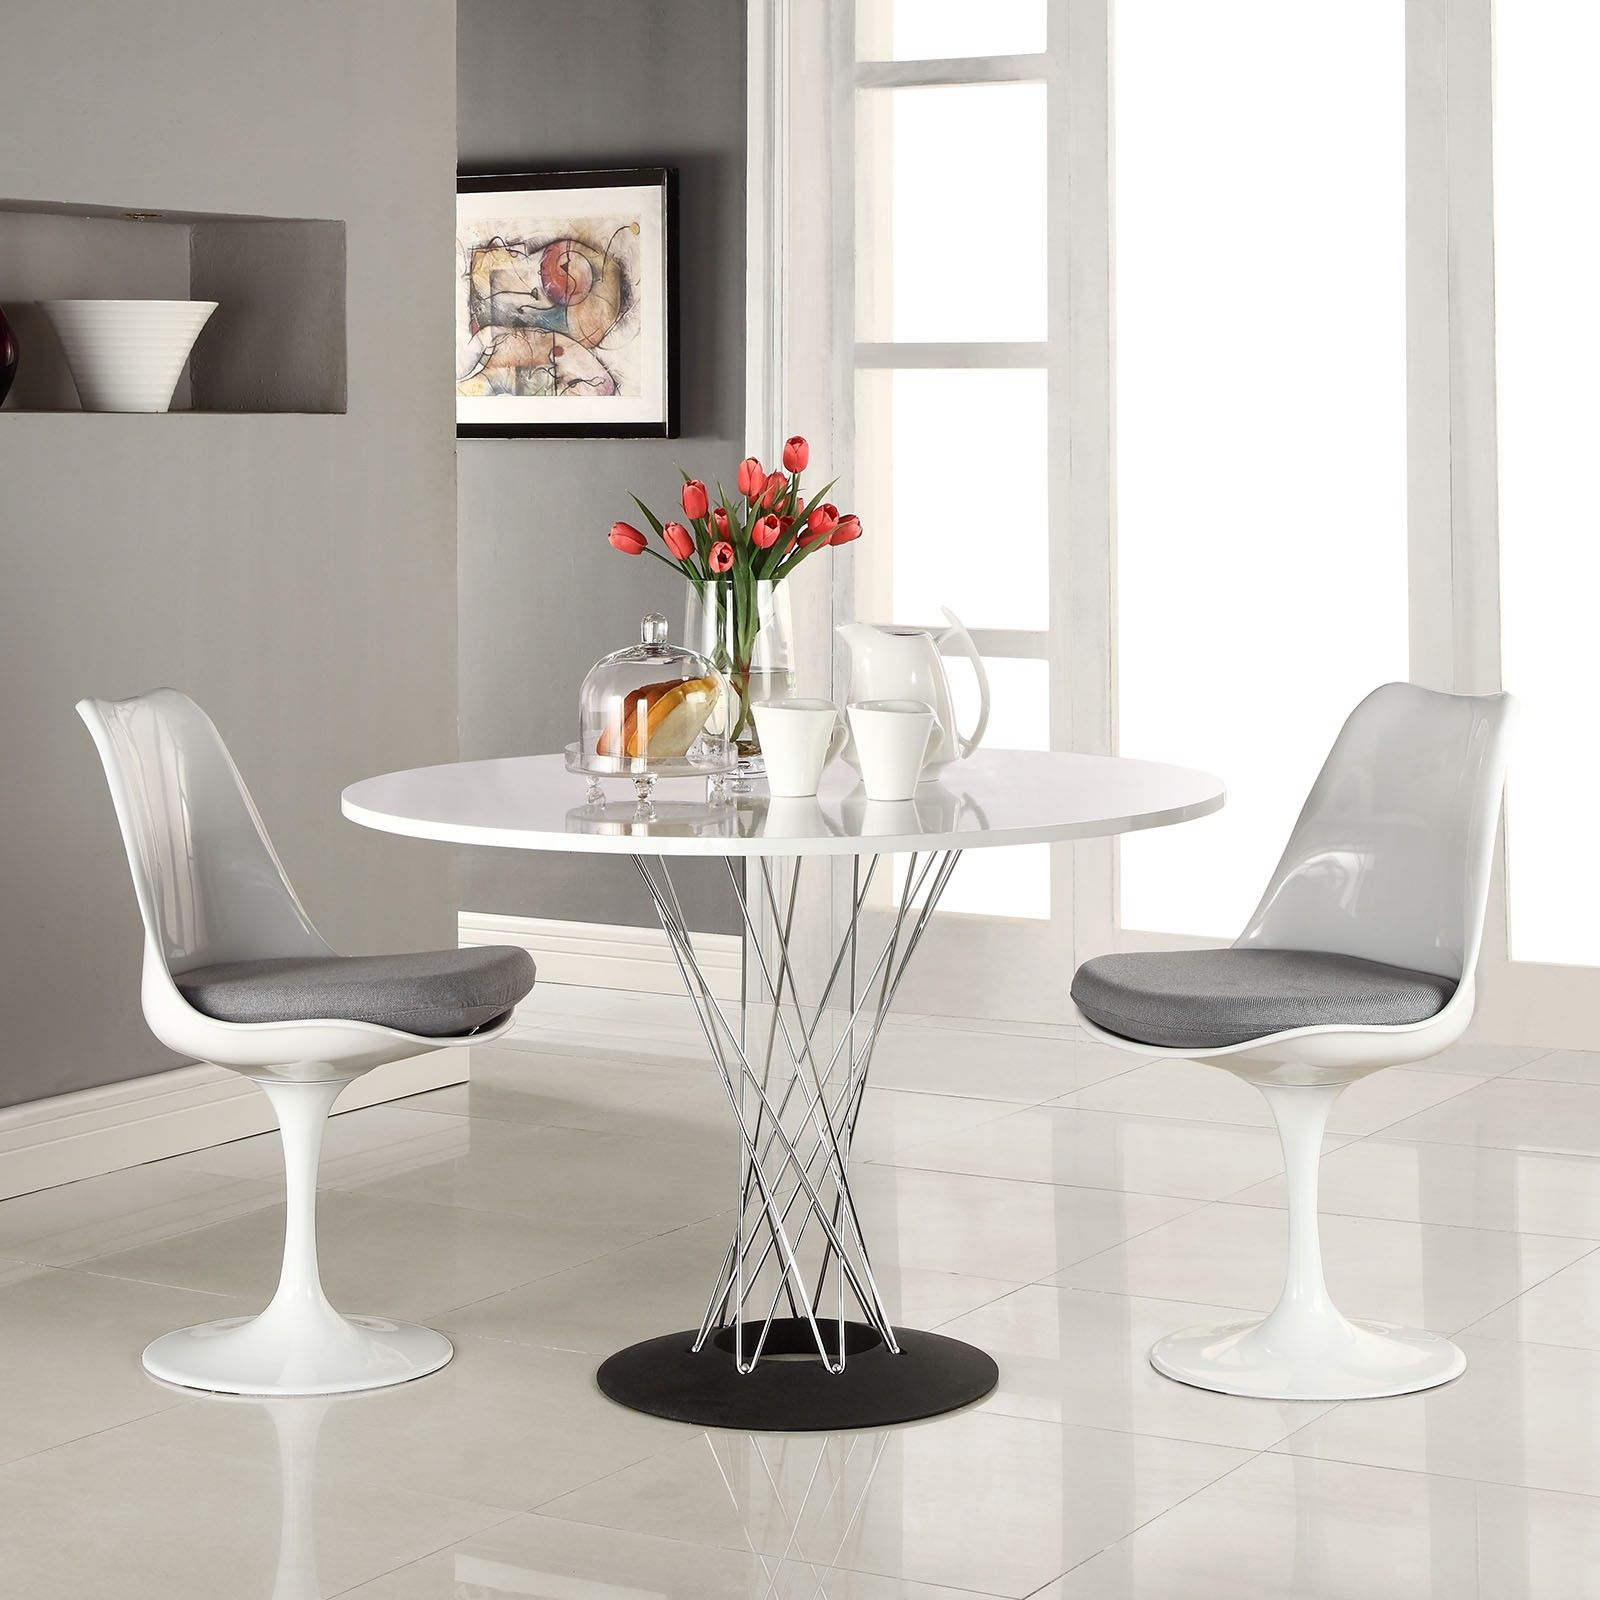 15 White Round Table Design Ideas For Extravagant Look Of Your DIning Room Design Ideas